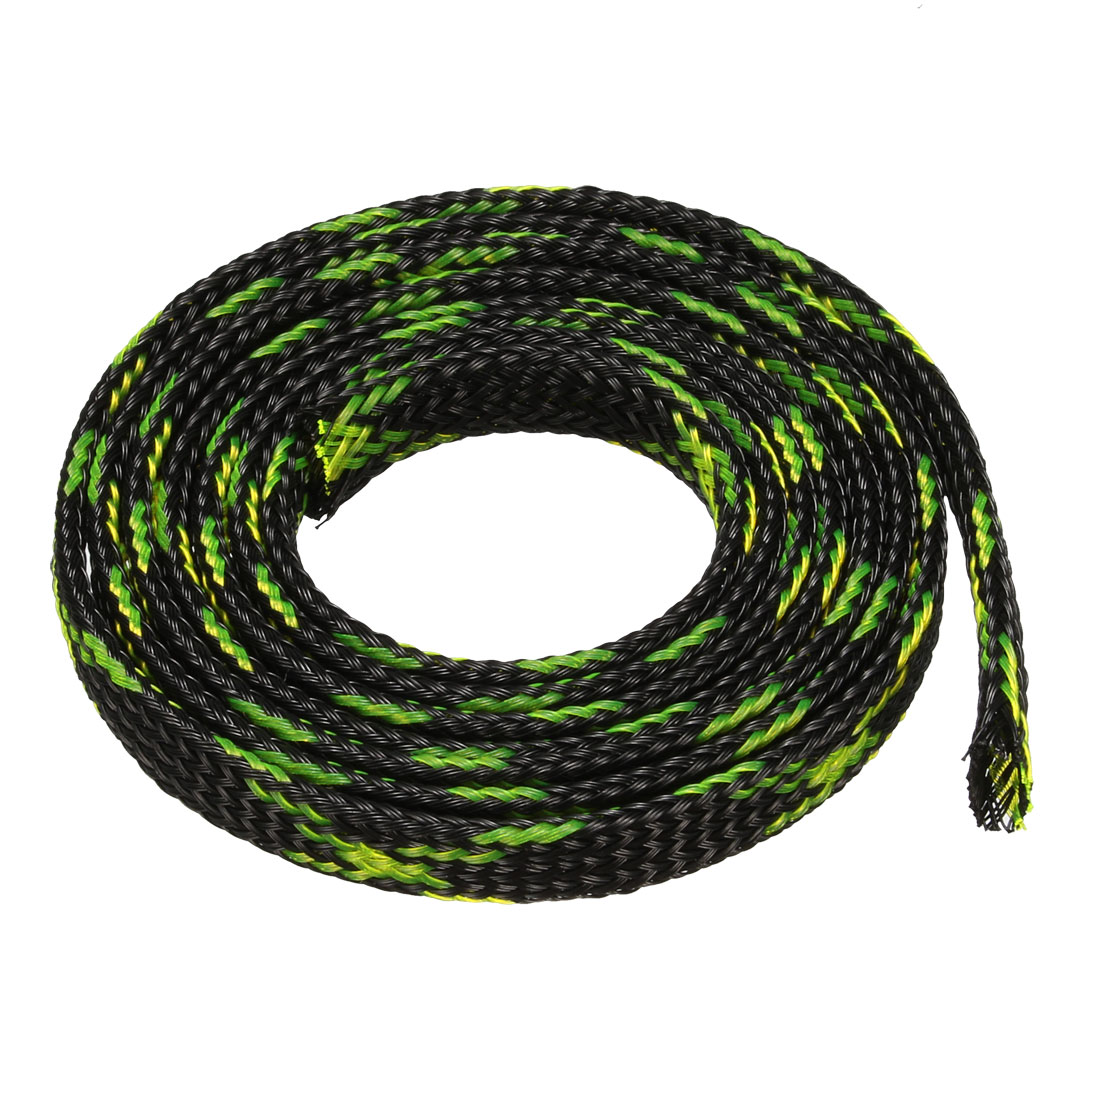 6mm PET Cable Wire Wrap Expandable Braided Sleeving Black Fluorescent Green 75cm Length